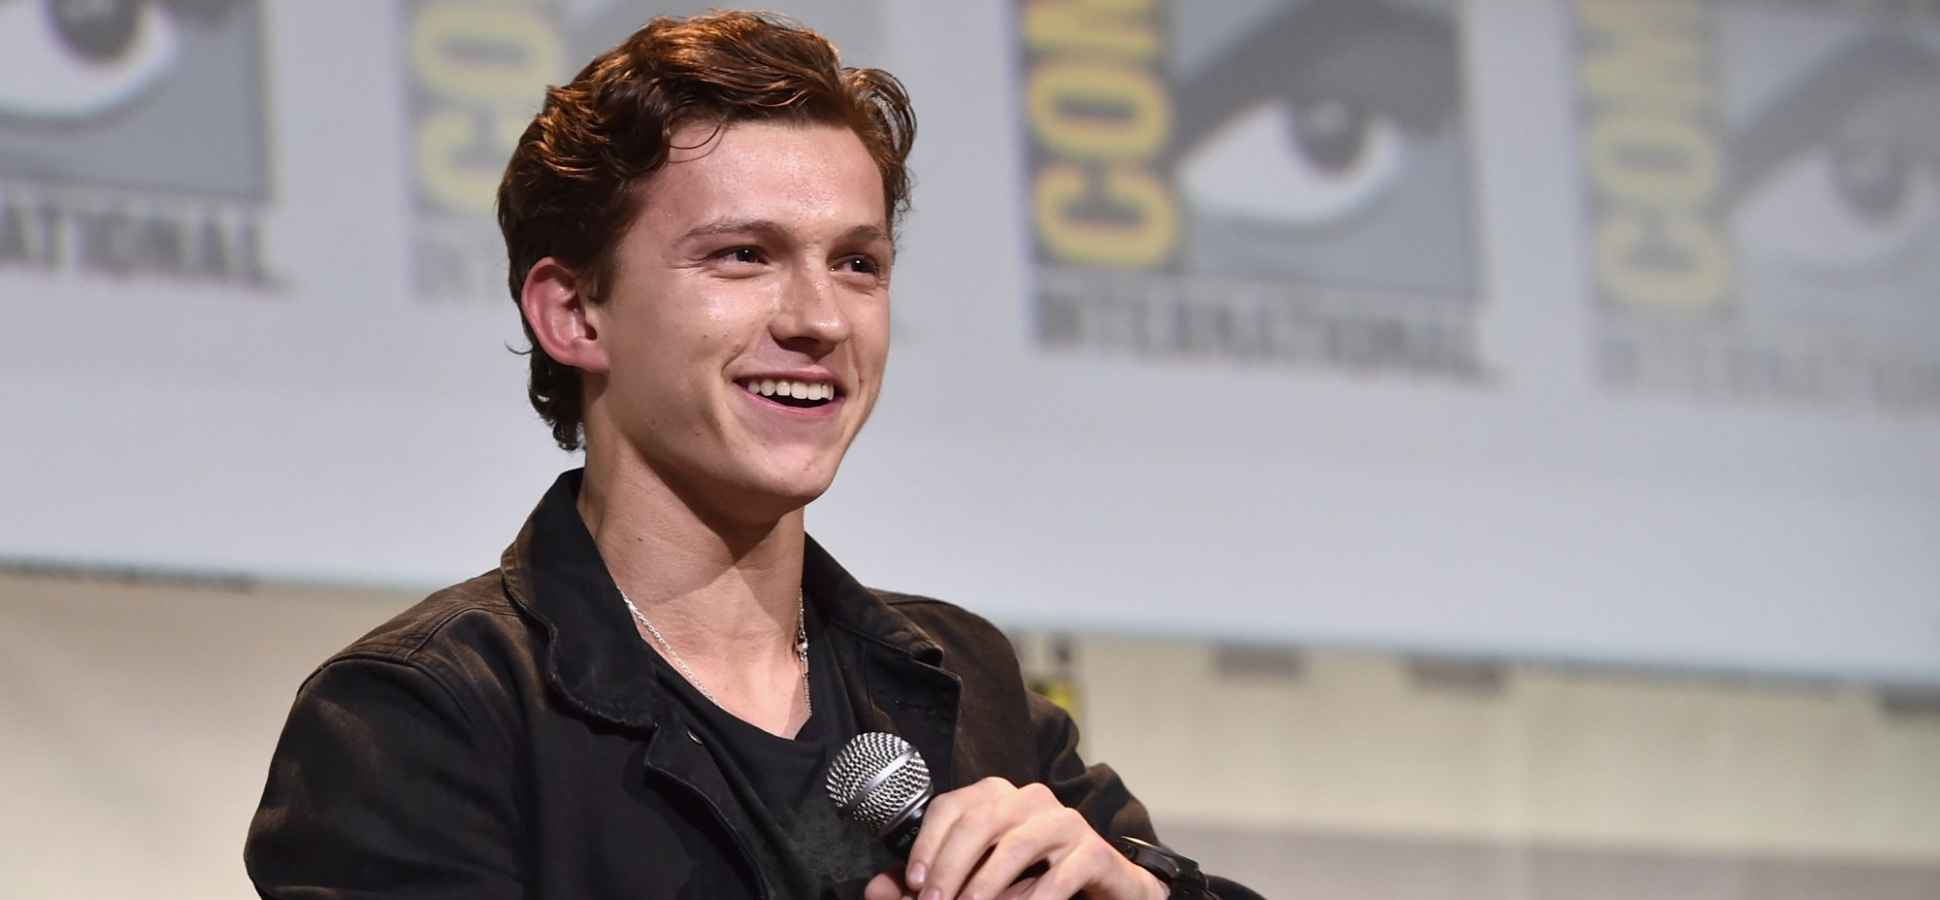 'Spider-Man' Star Tom Holland's Response to Kirsten Dunst Is a Lesson in Emotional Intelligence